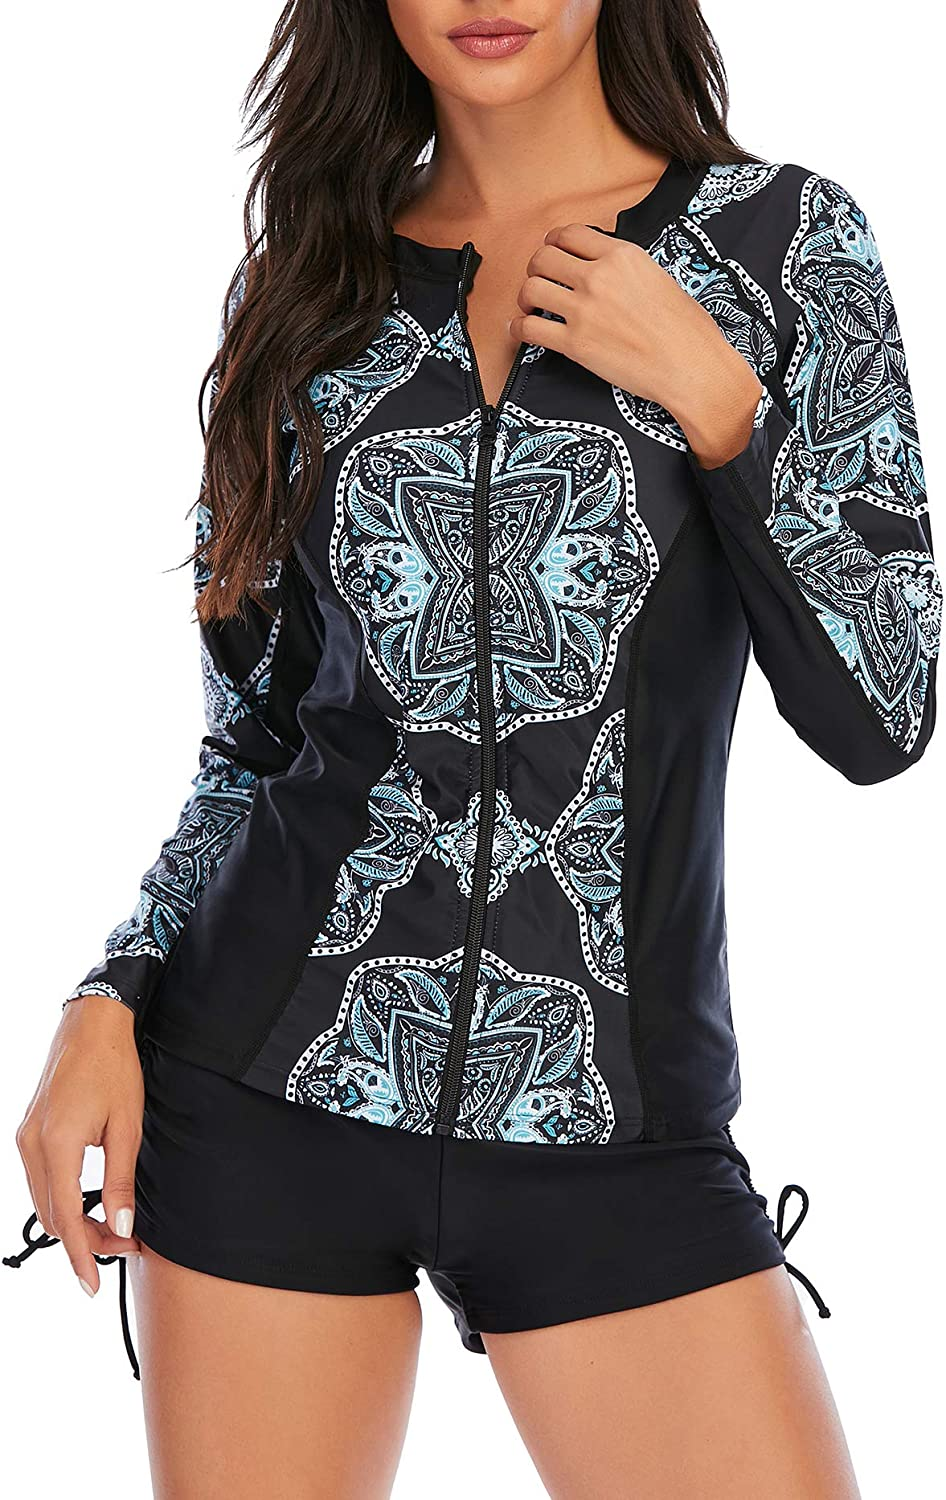 American Trends Long Sleeve New York Mall Bathing Suits Pieces for Women S Two Opening large release sale